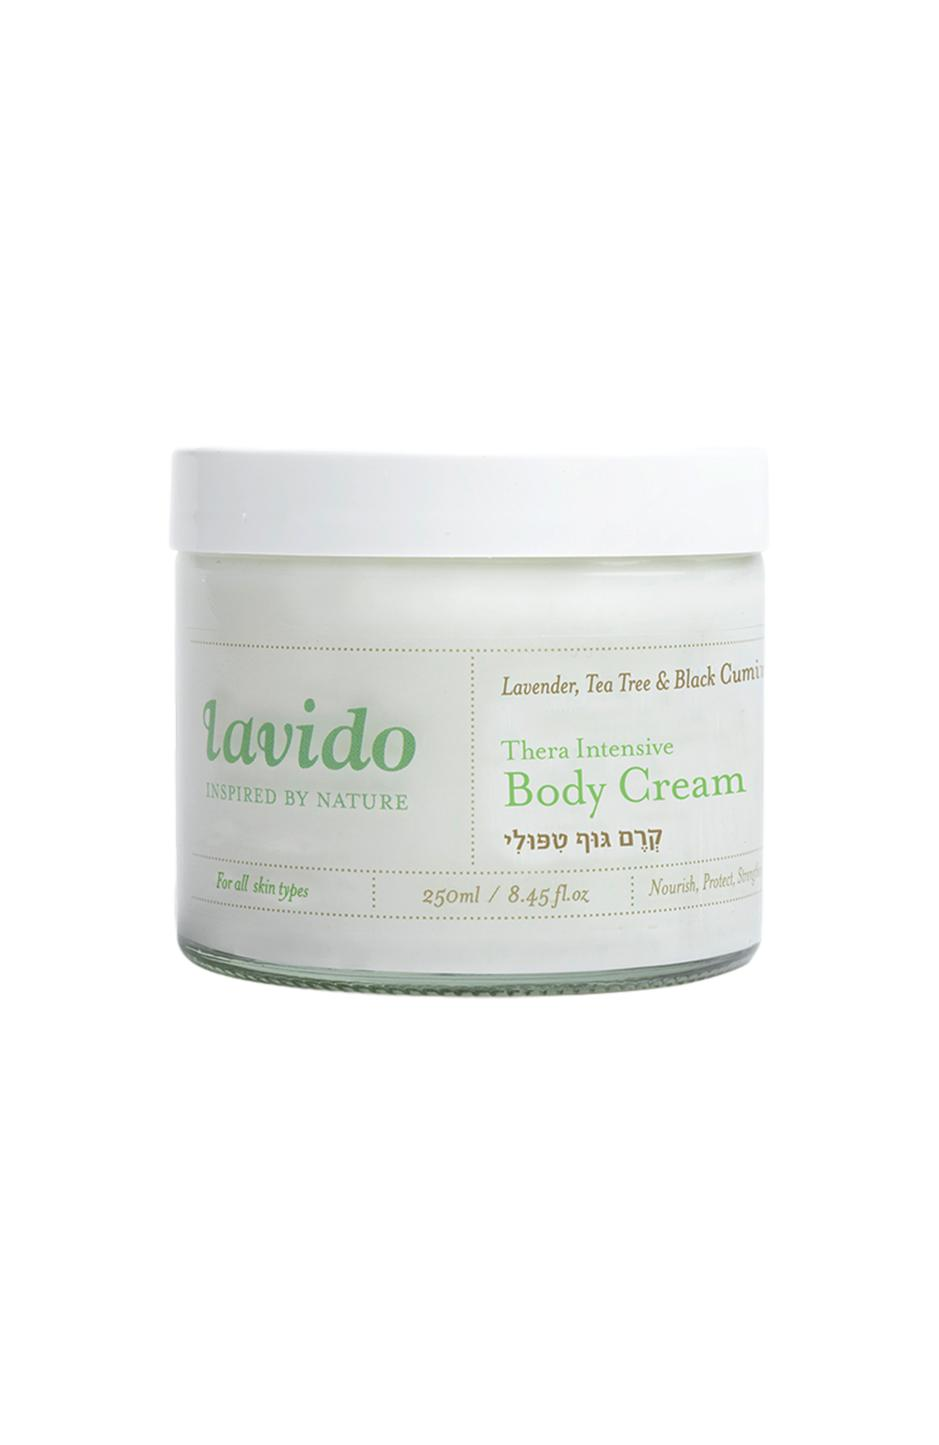 Thera-Intensive Body Cream